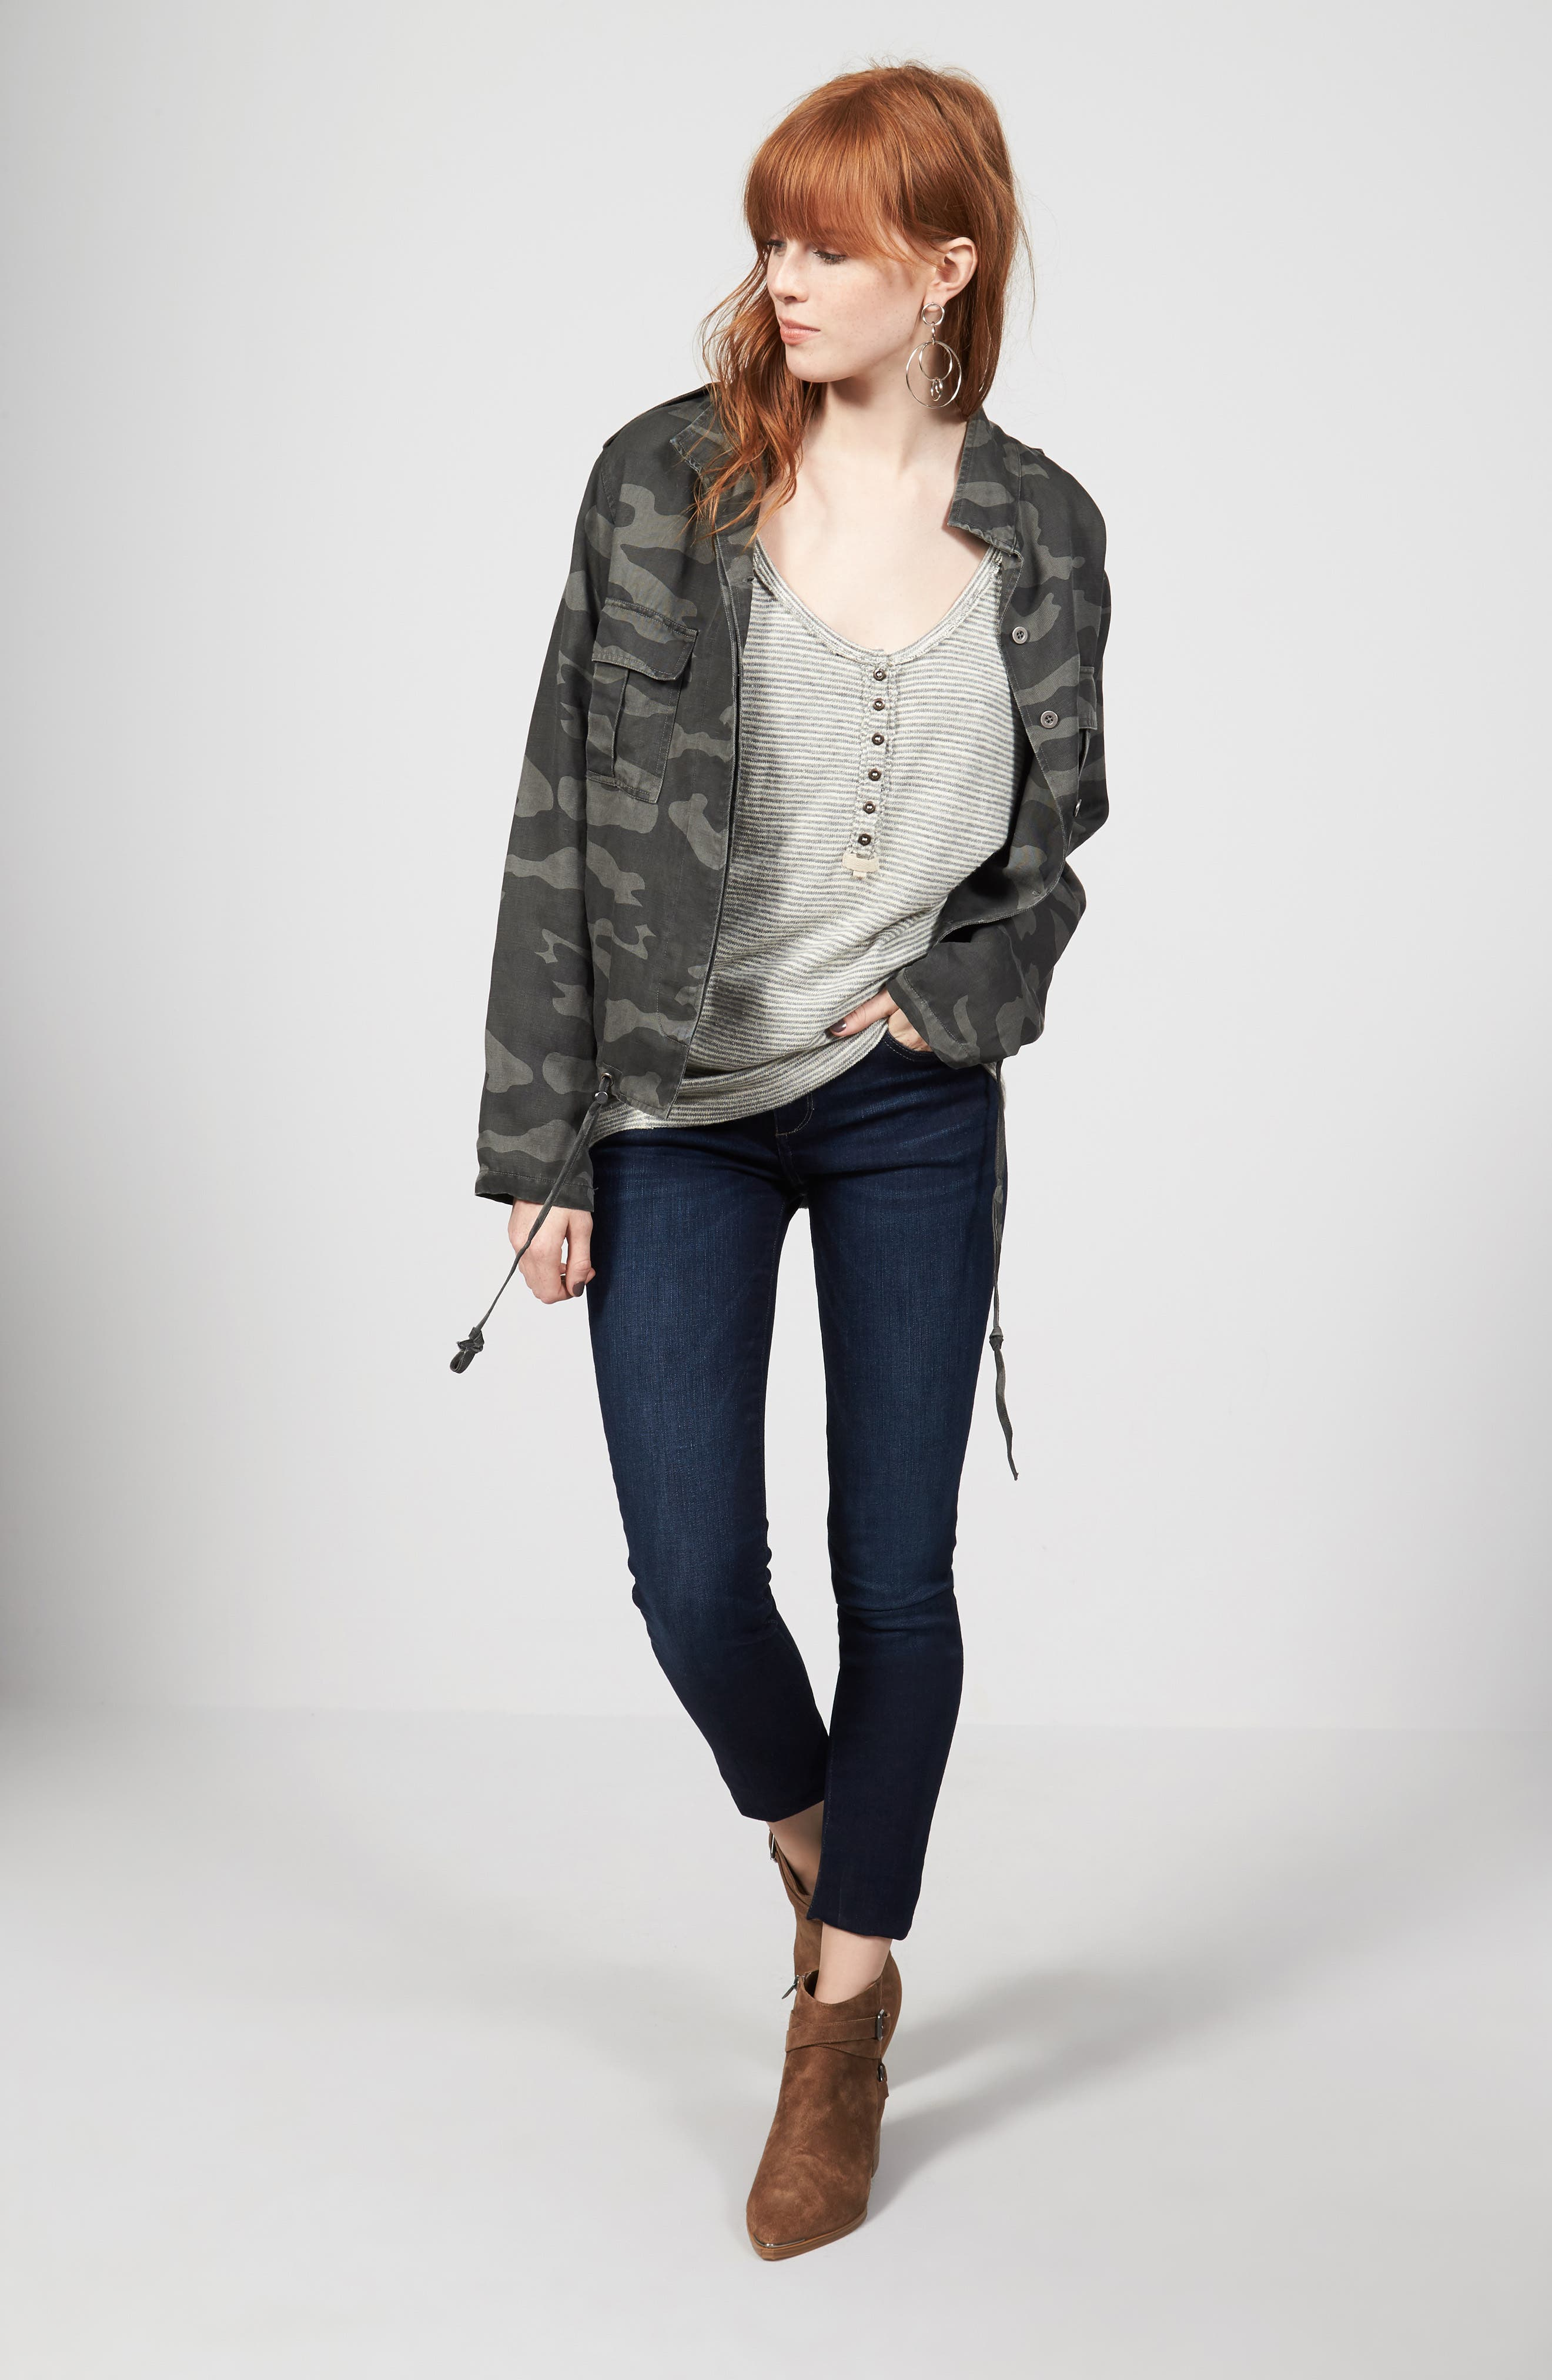 Rails Jacket, Free People Tee & DL1961 Jeans Outfit with Accessories